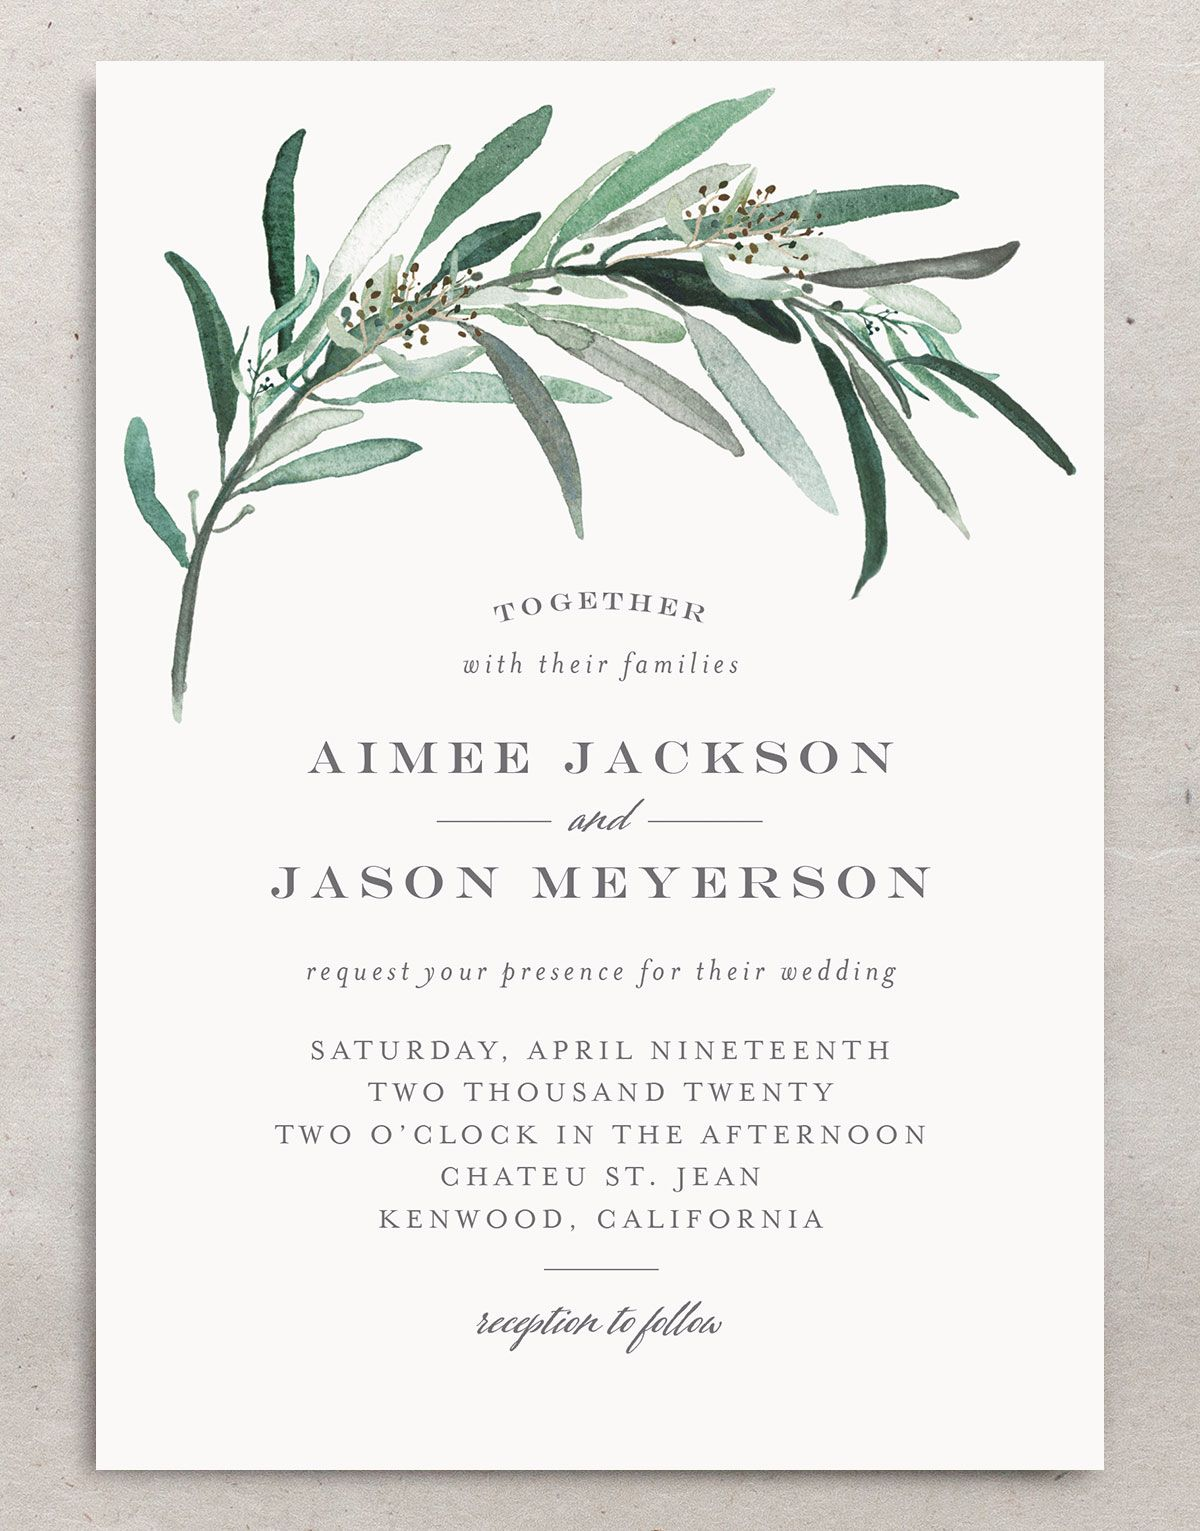 Lush Greenery invitation front